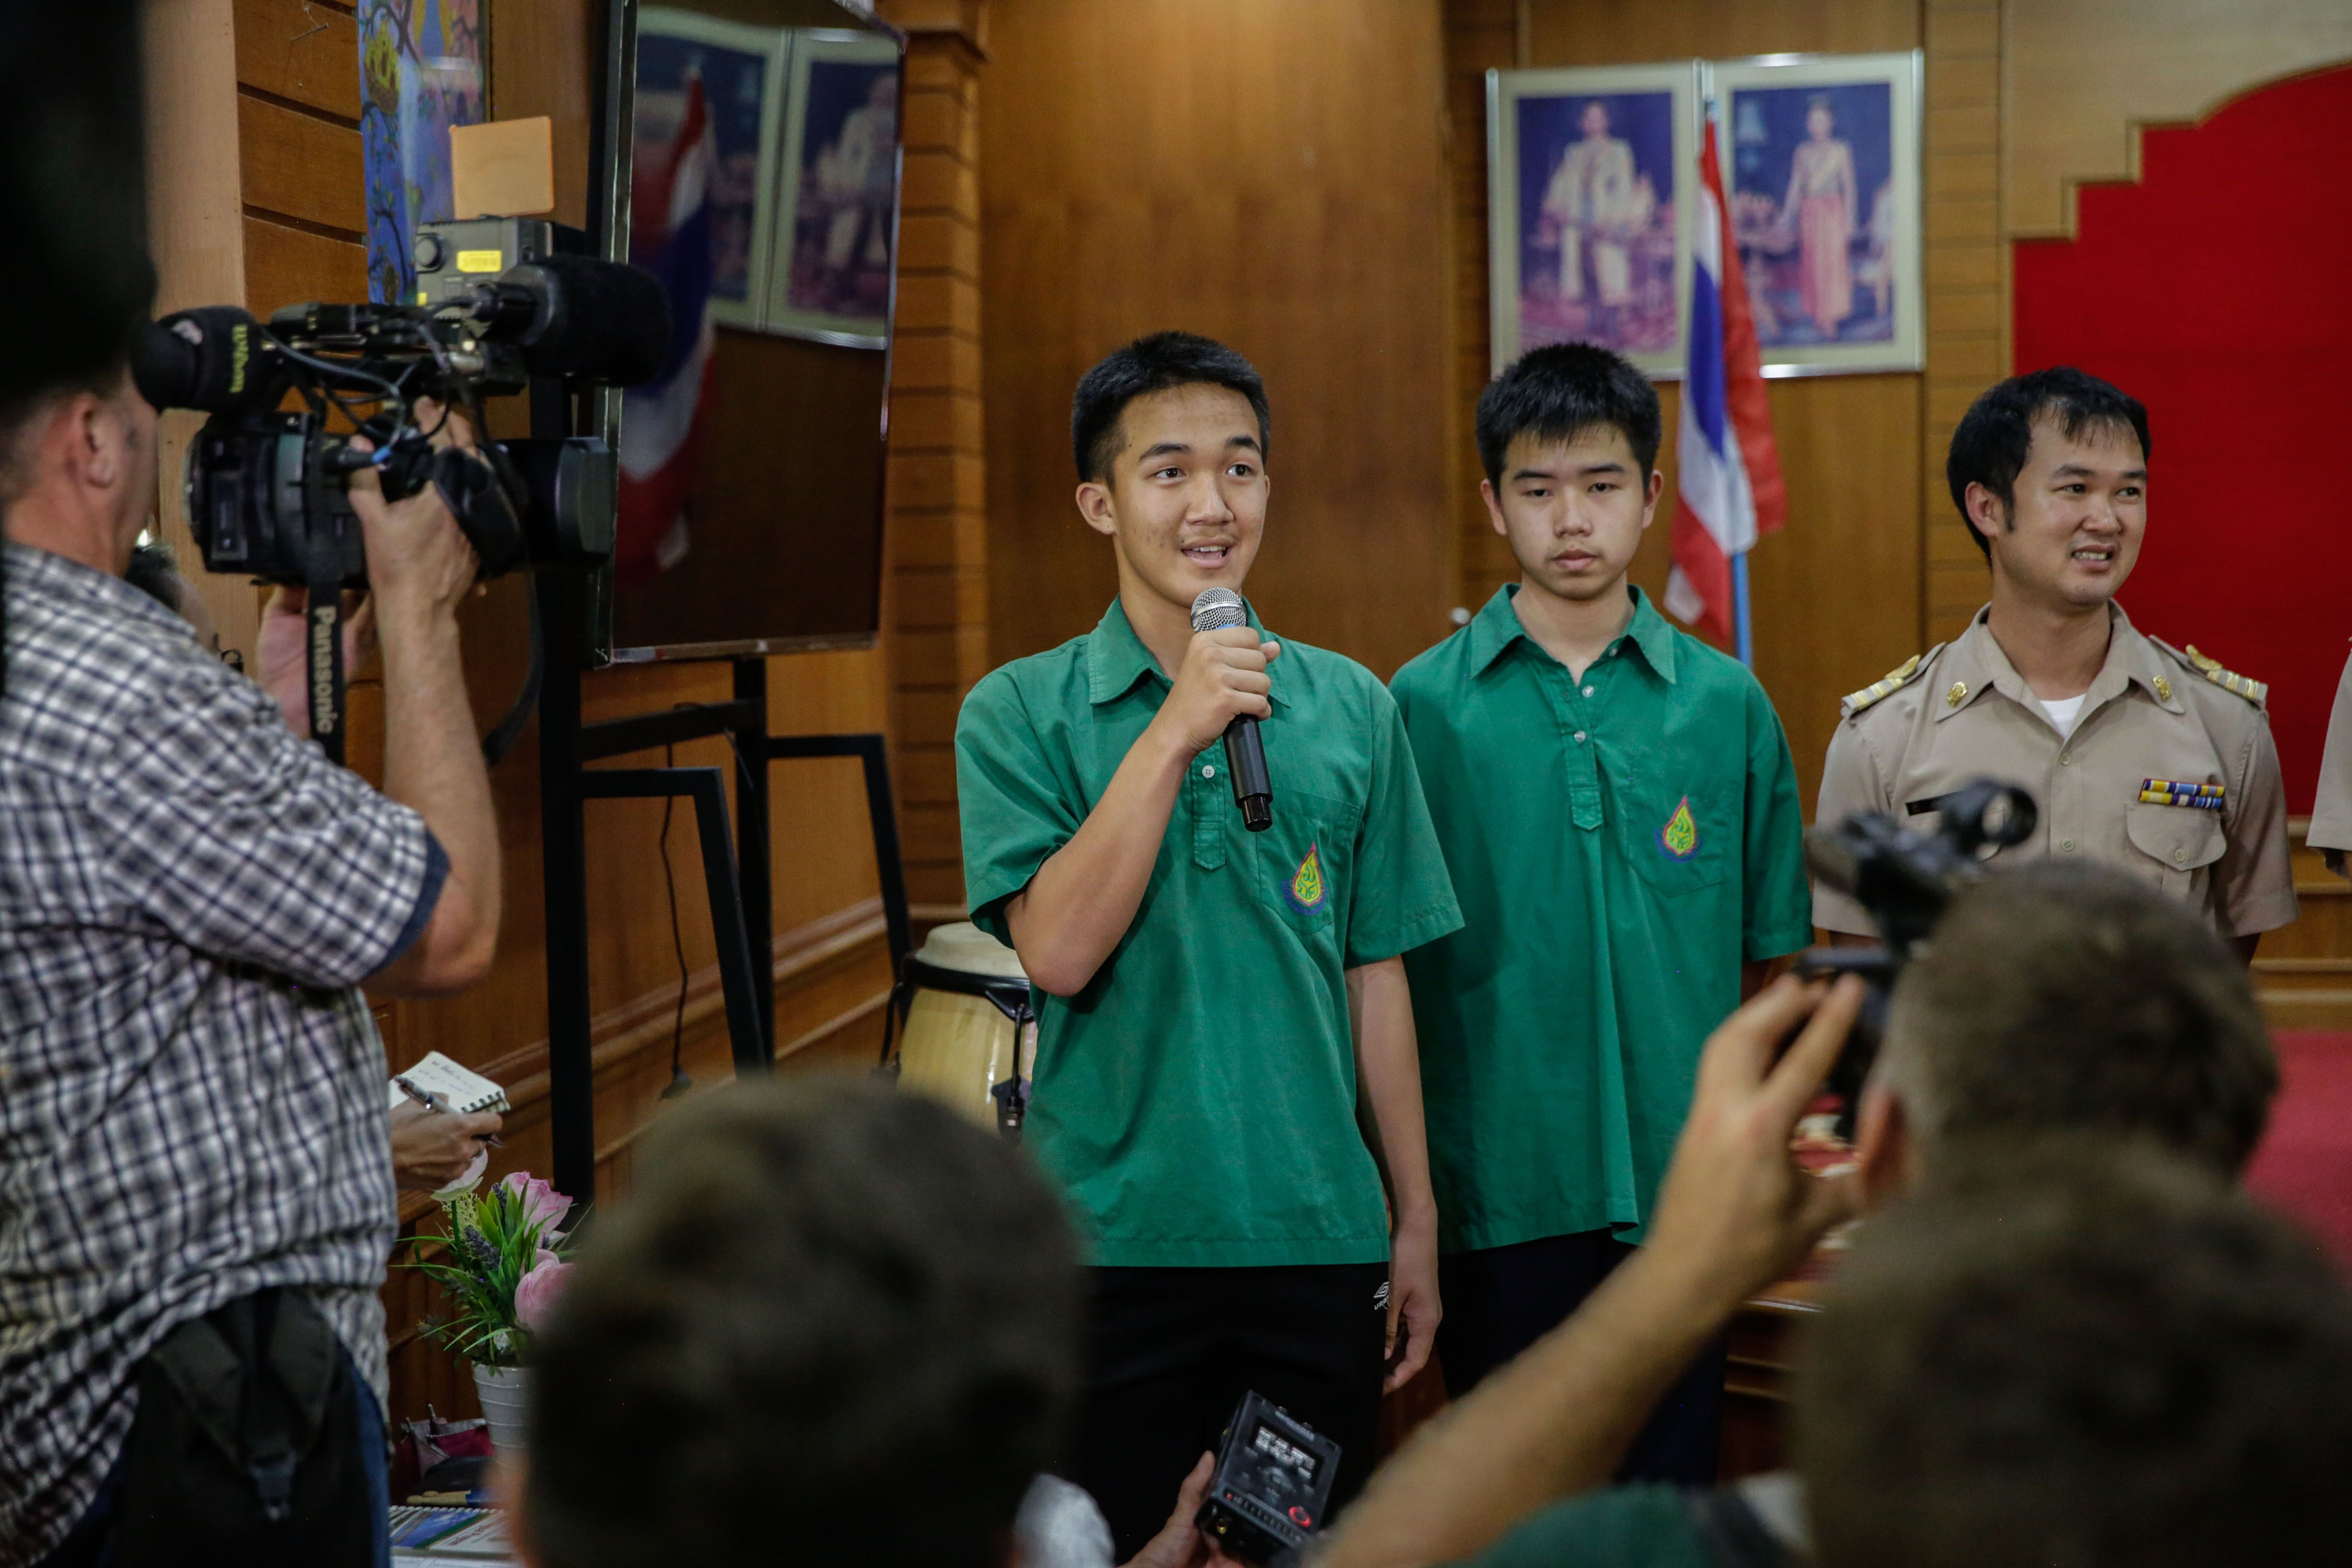 'We're going to eat fried chicken at KFC': Classmates, teachers await return of boys trapped in Thai cave